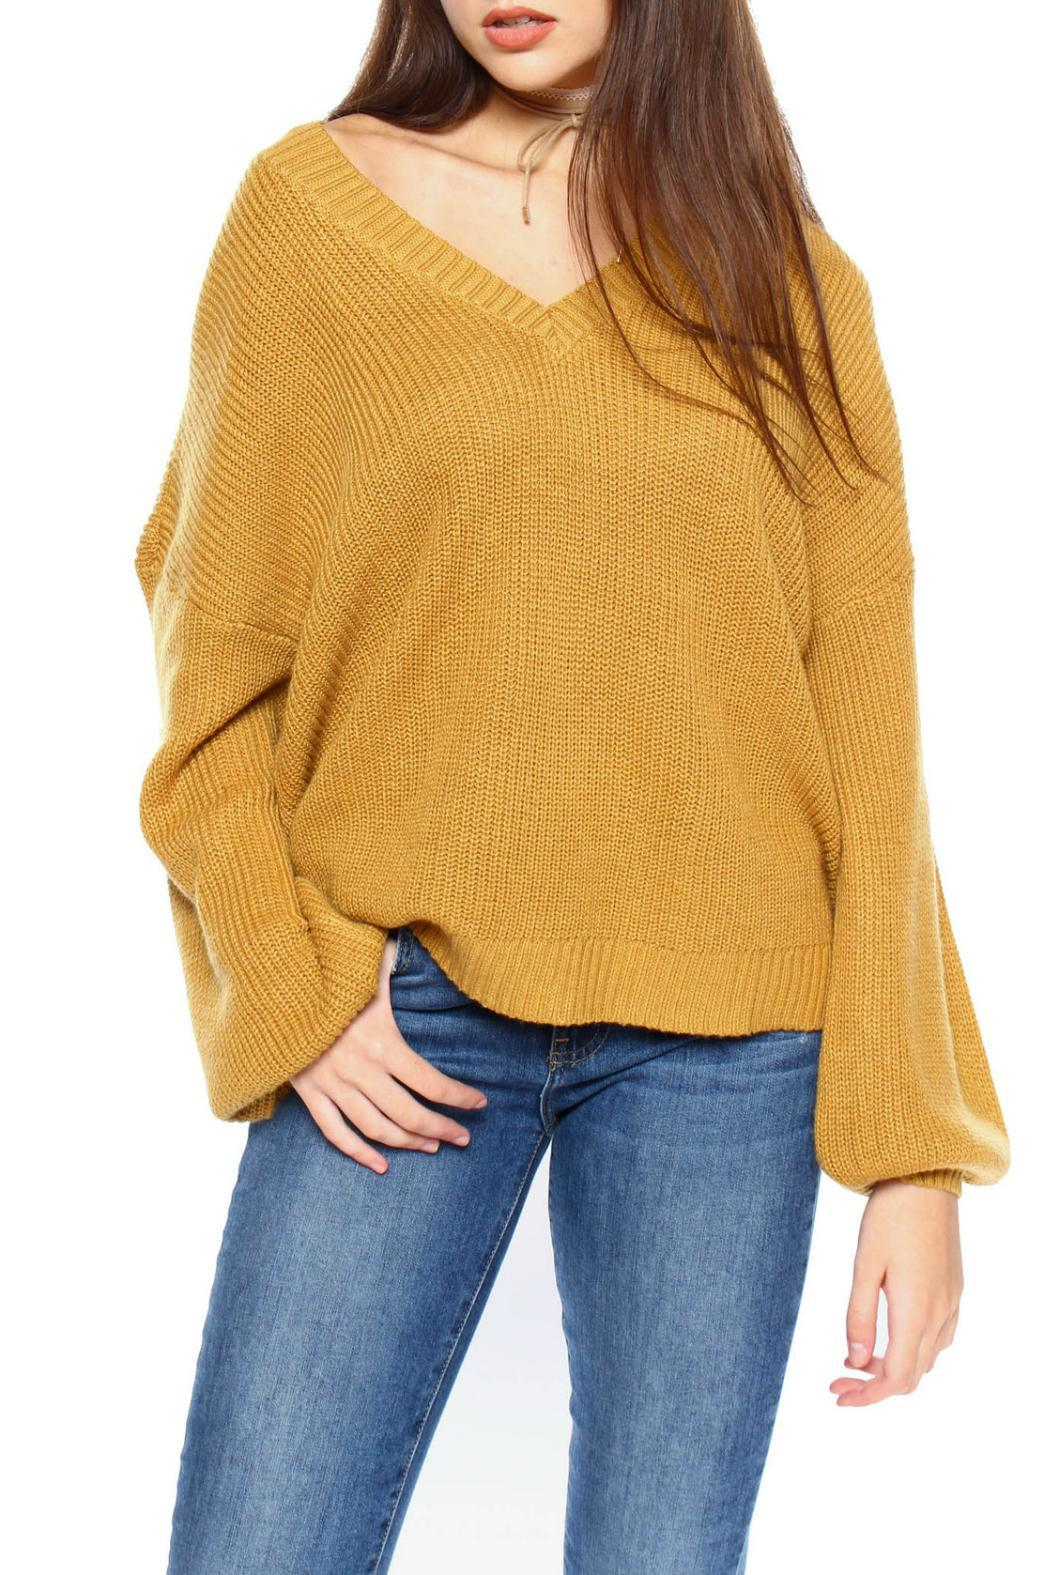 Somedays Lovin Honey Jam Sweater from Canada by Blue Sky Fashions ...